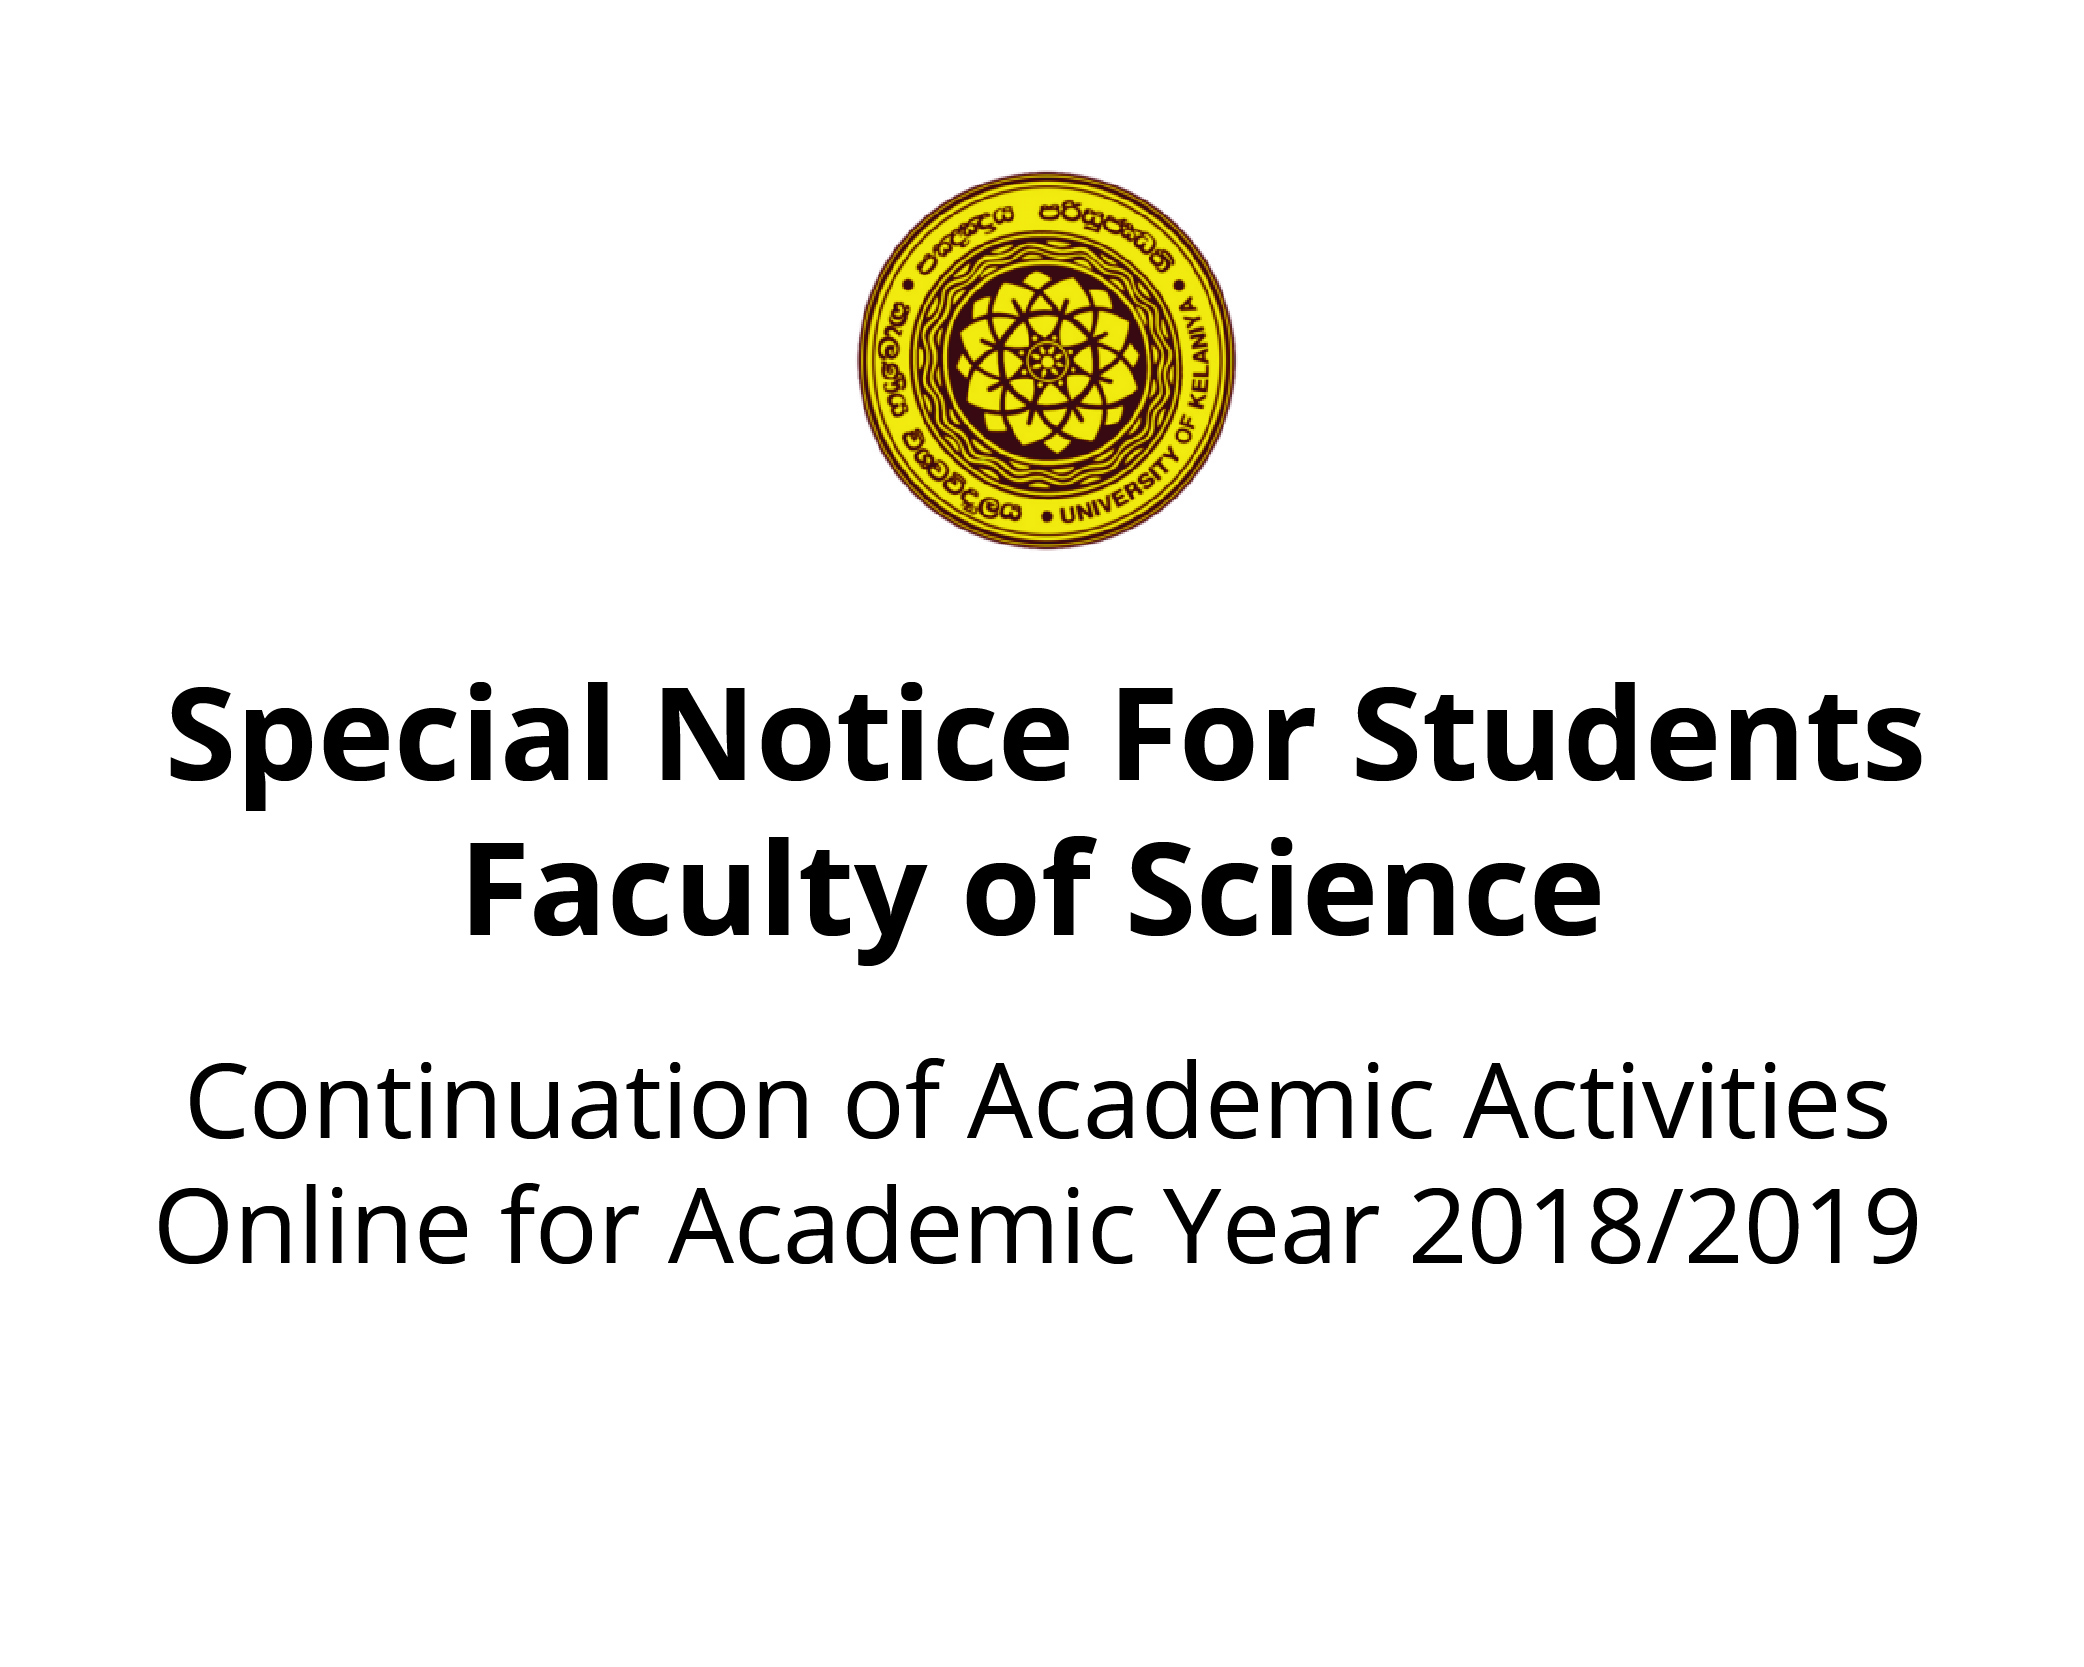 Continuation of Academic Activities Online for Academic Year 2018/2019